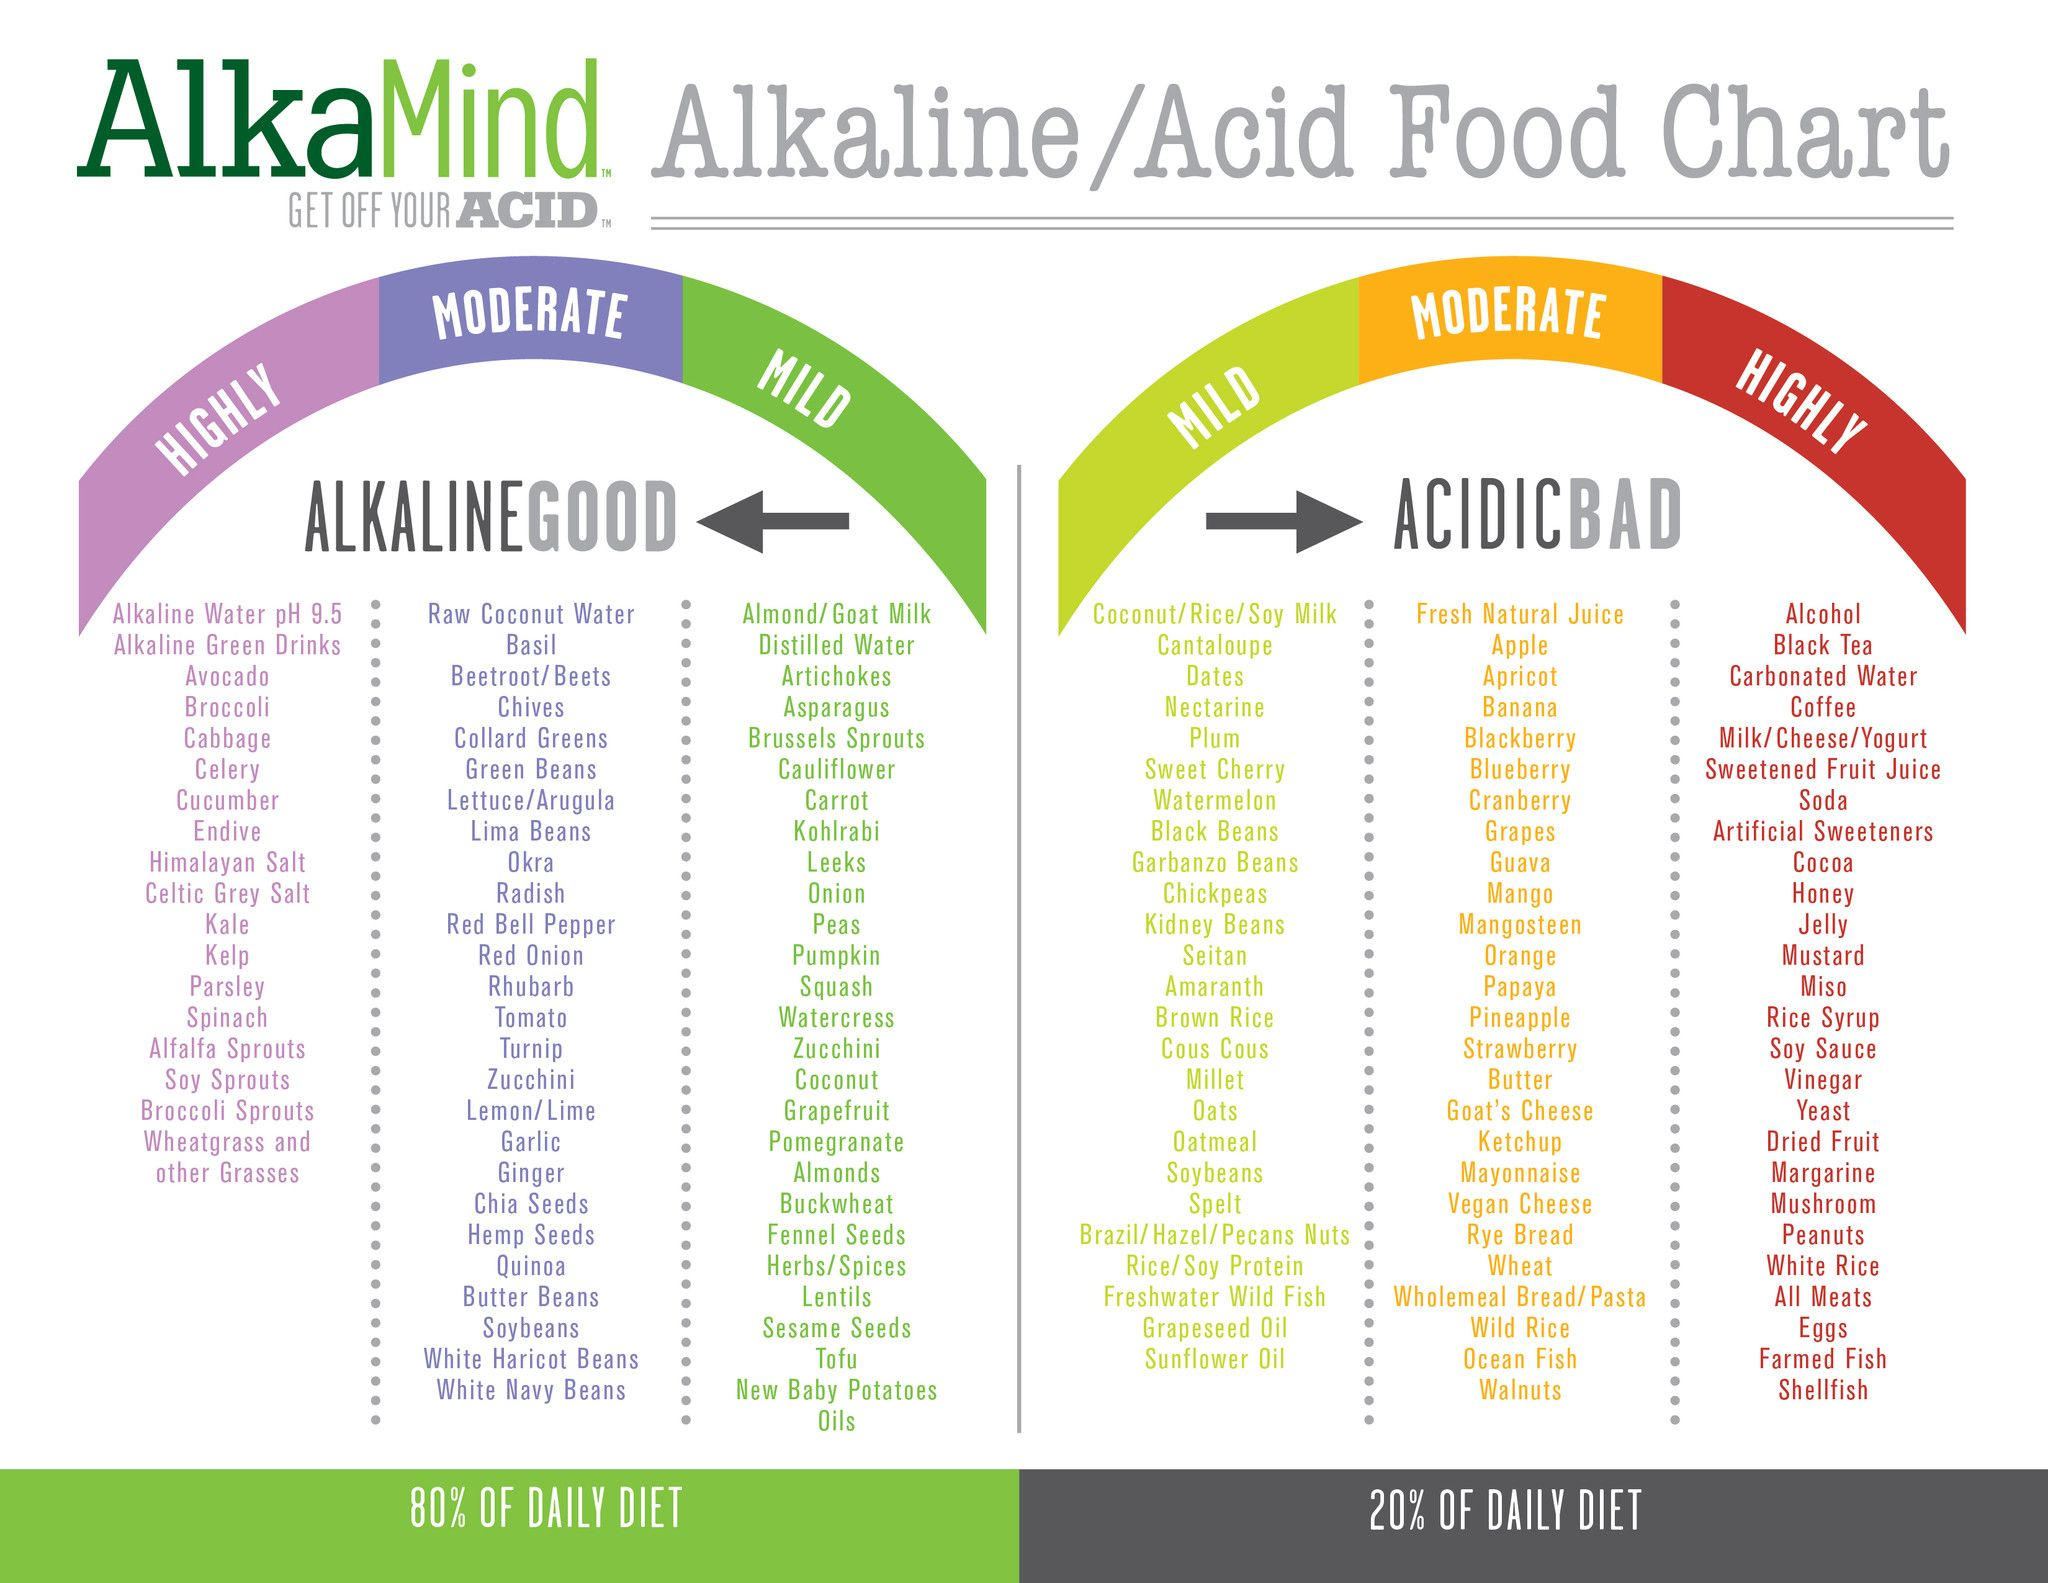 Daily diet for good health - Alkaline Diet Recipes The Beauty Health Benefits Of An Alkaline Diet